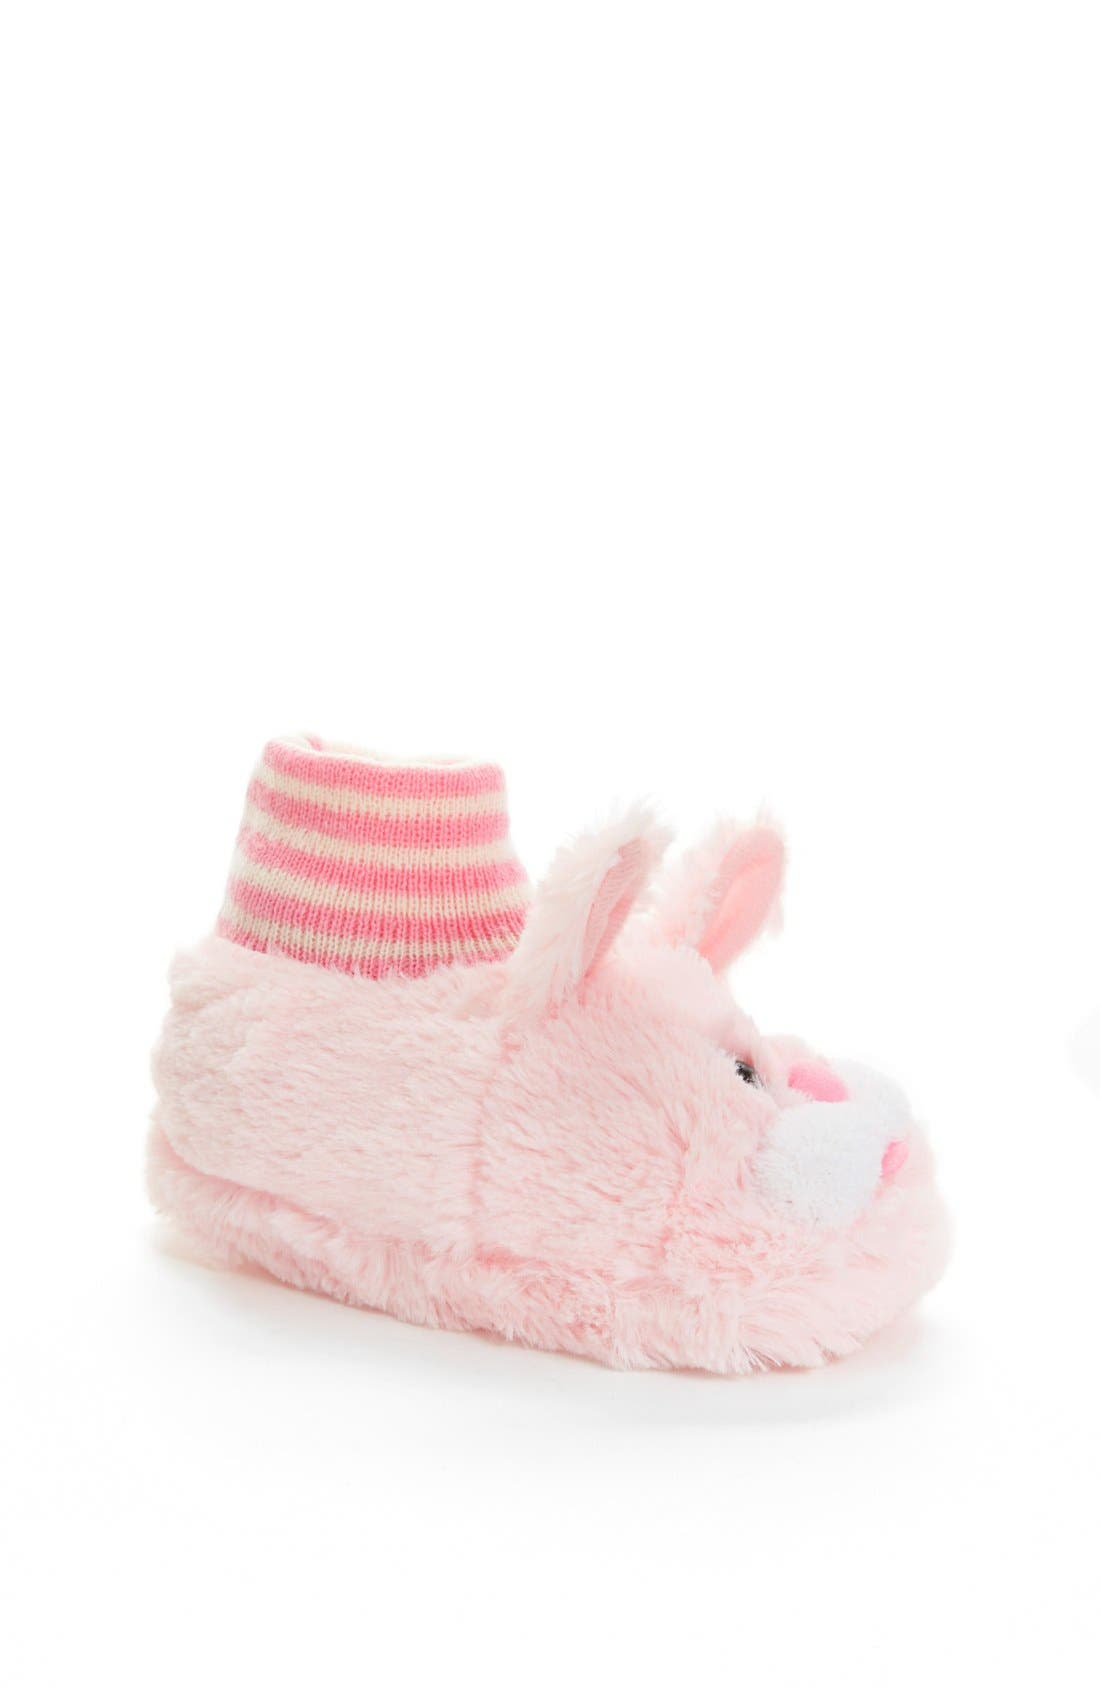 Alternate Image 1 Selected - Nordstrom Bunny Slippers (Walker, Toddler & Little Kid)